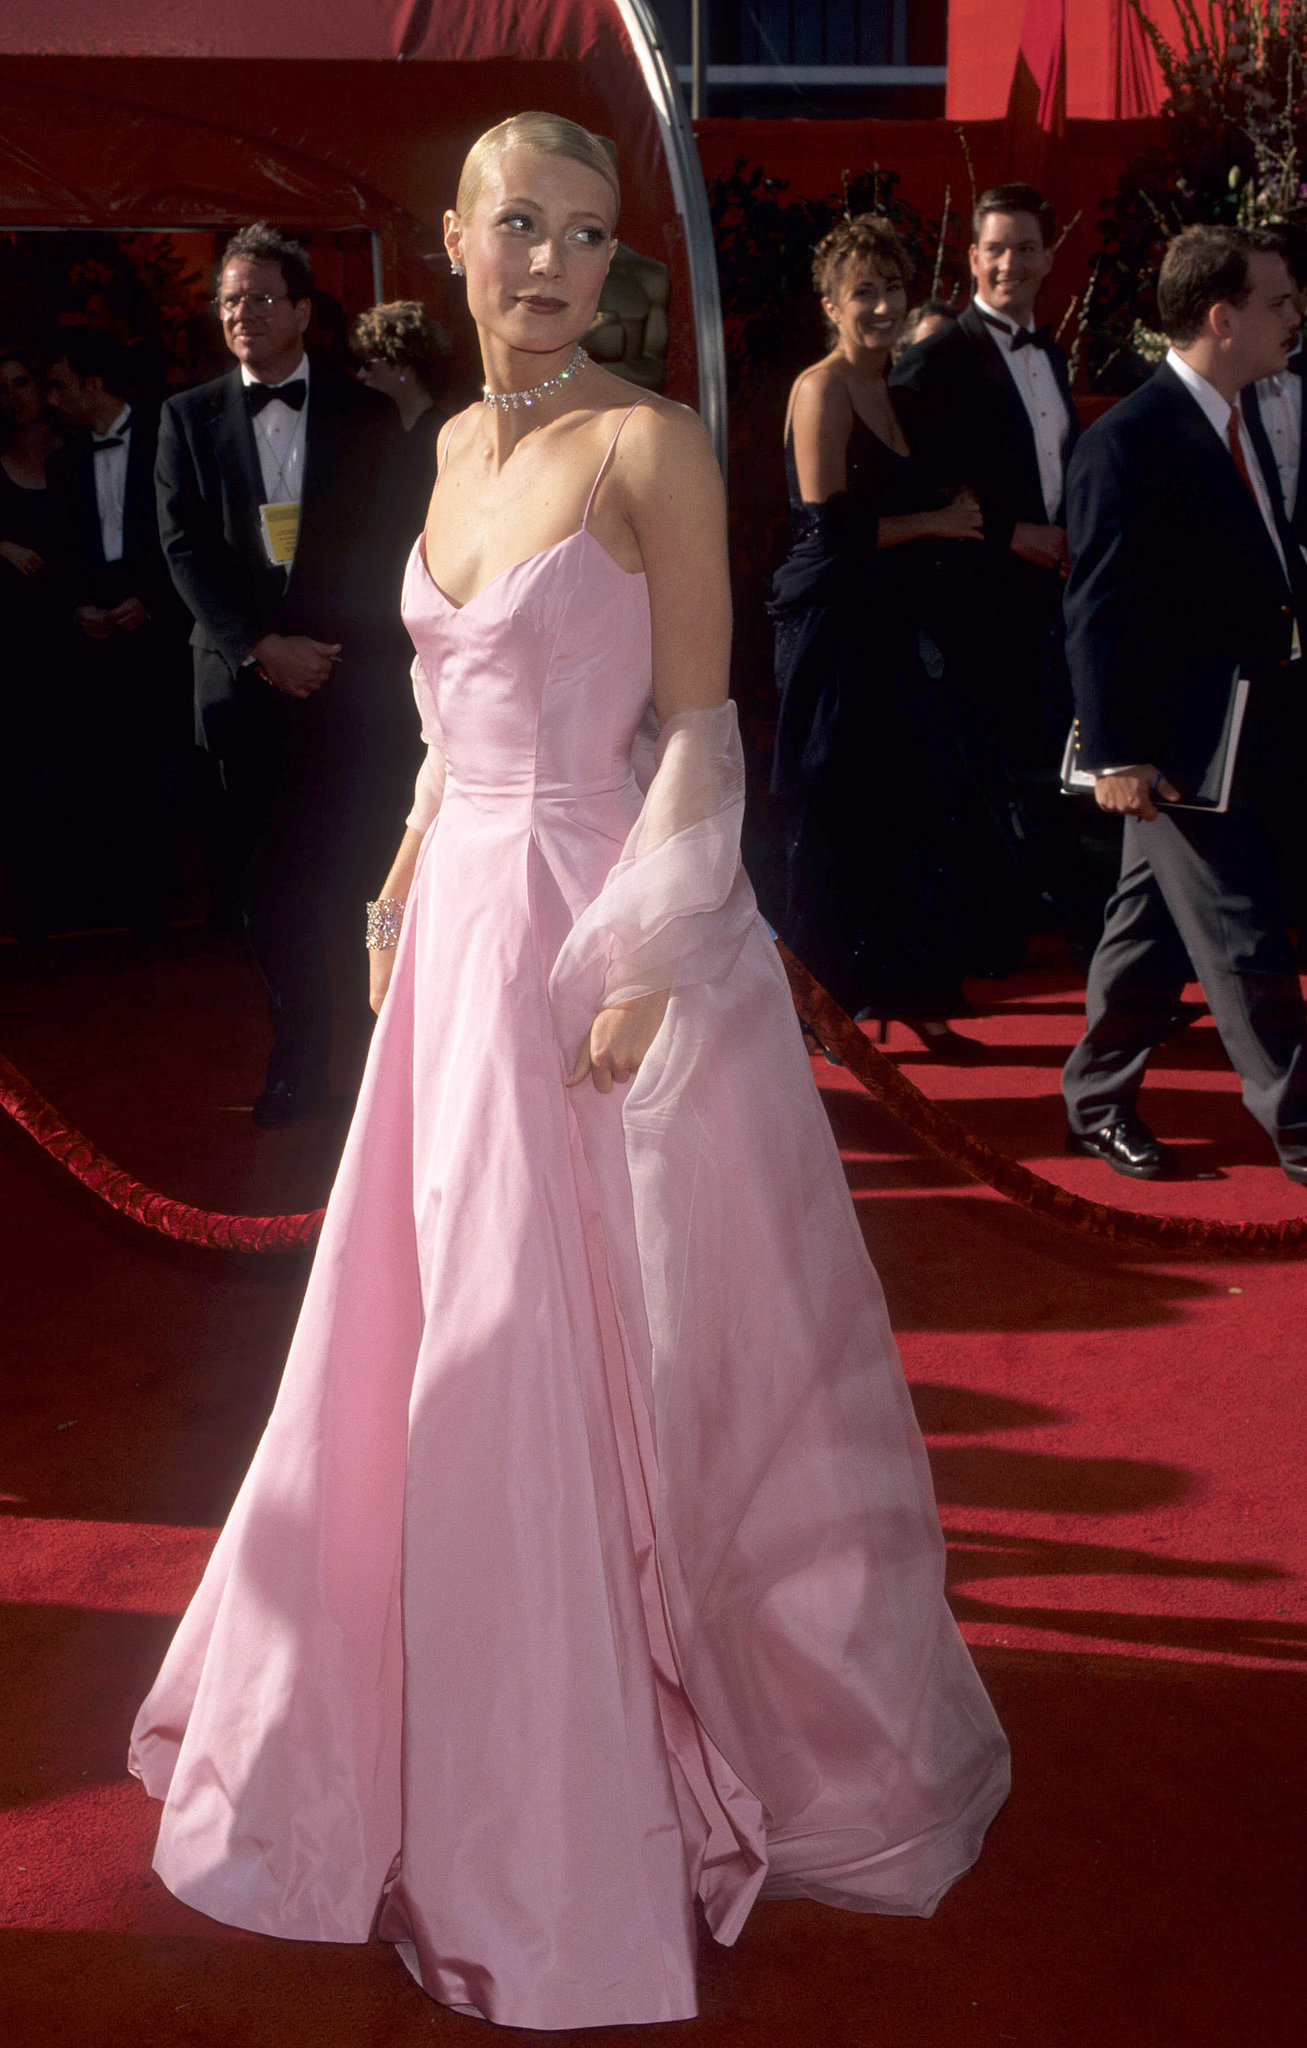 Gwyneth Paltrow at the Academy Awards in 1999